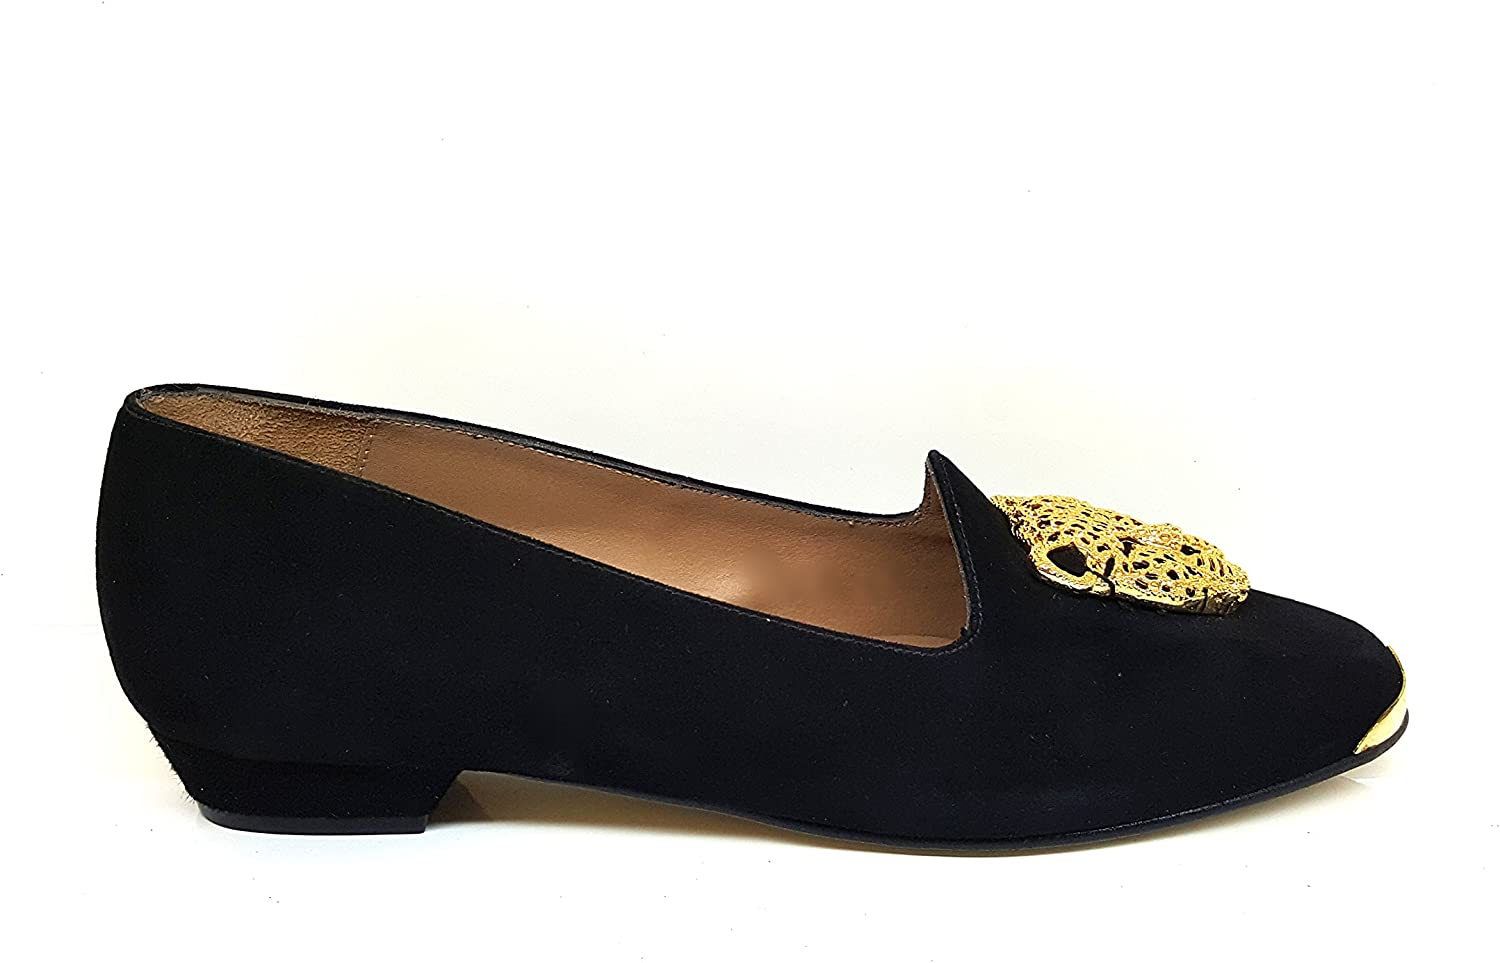 GENNIA CEON-P. - Women Leather Flat Ballerina with golden Tiger Adornment & Low Heel